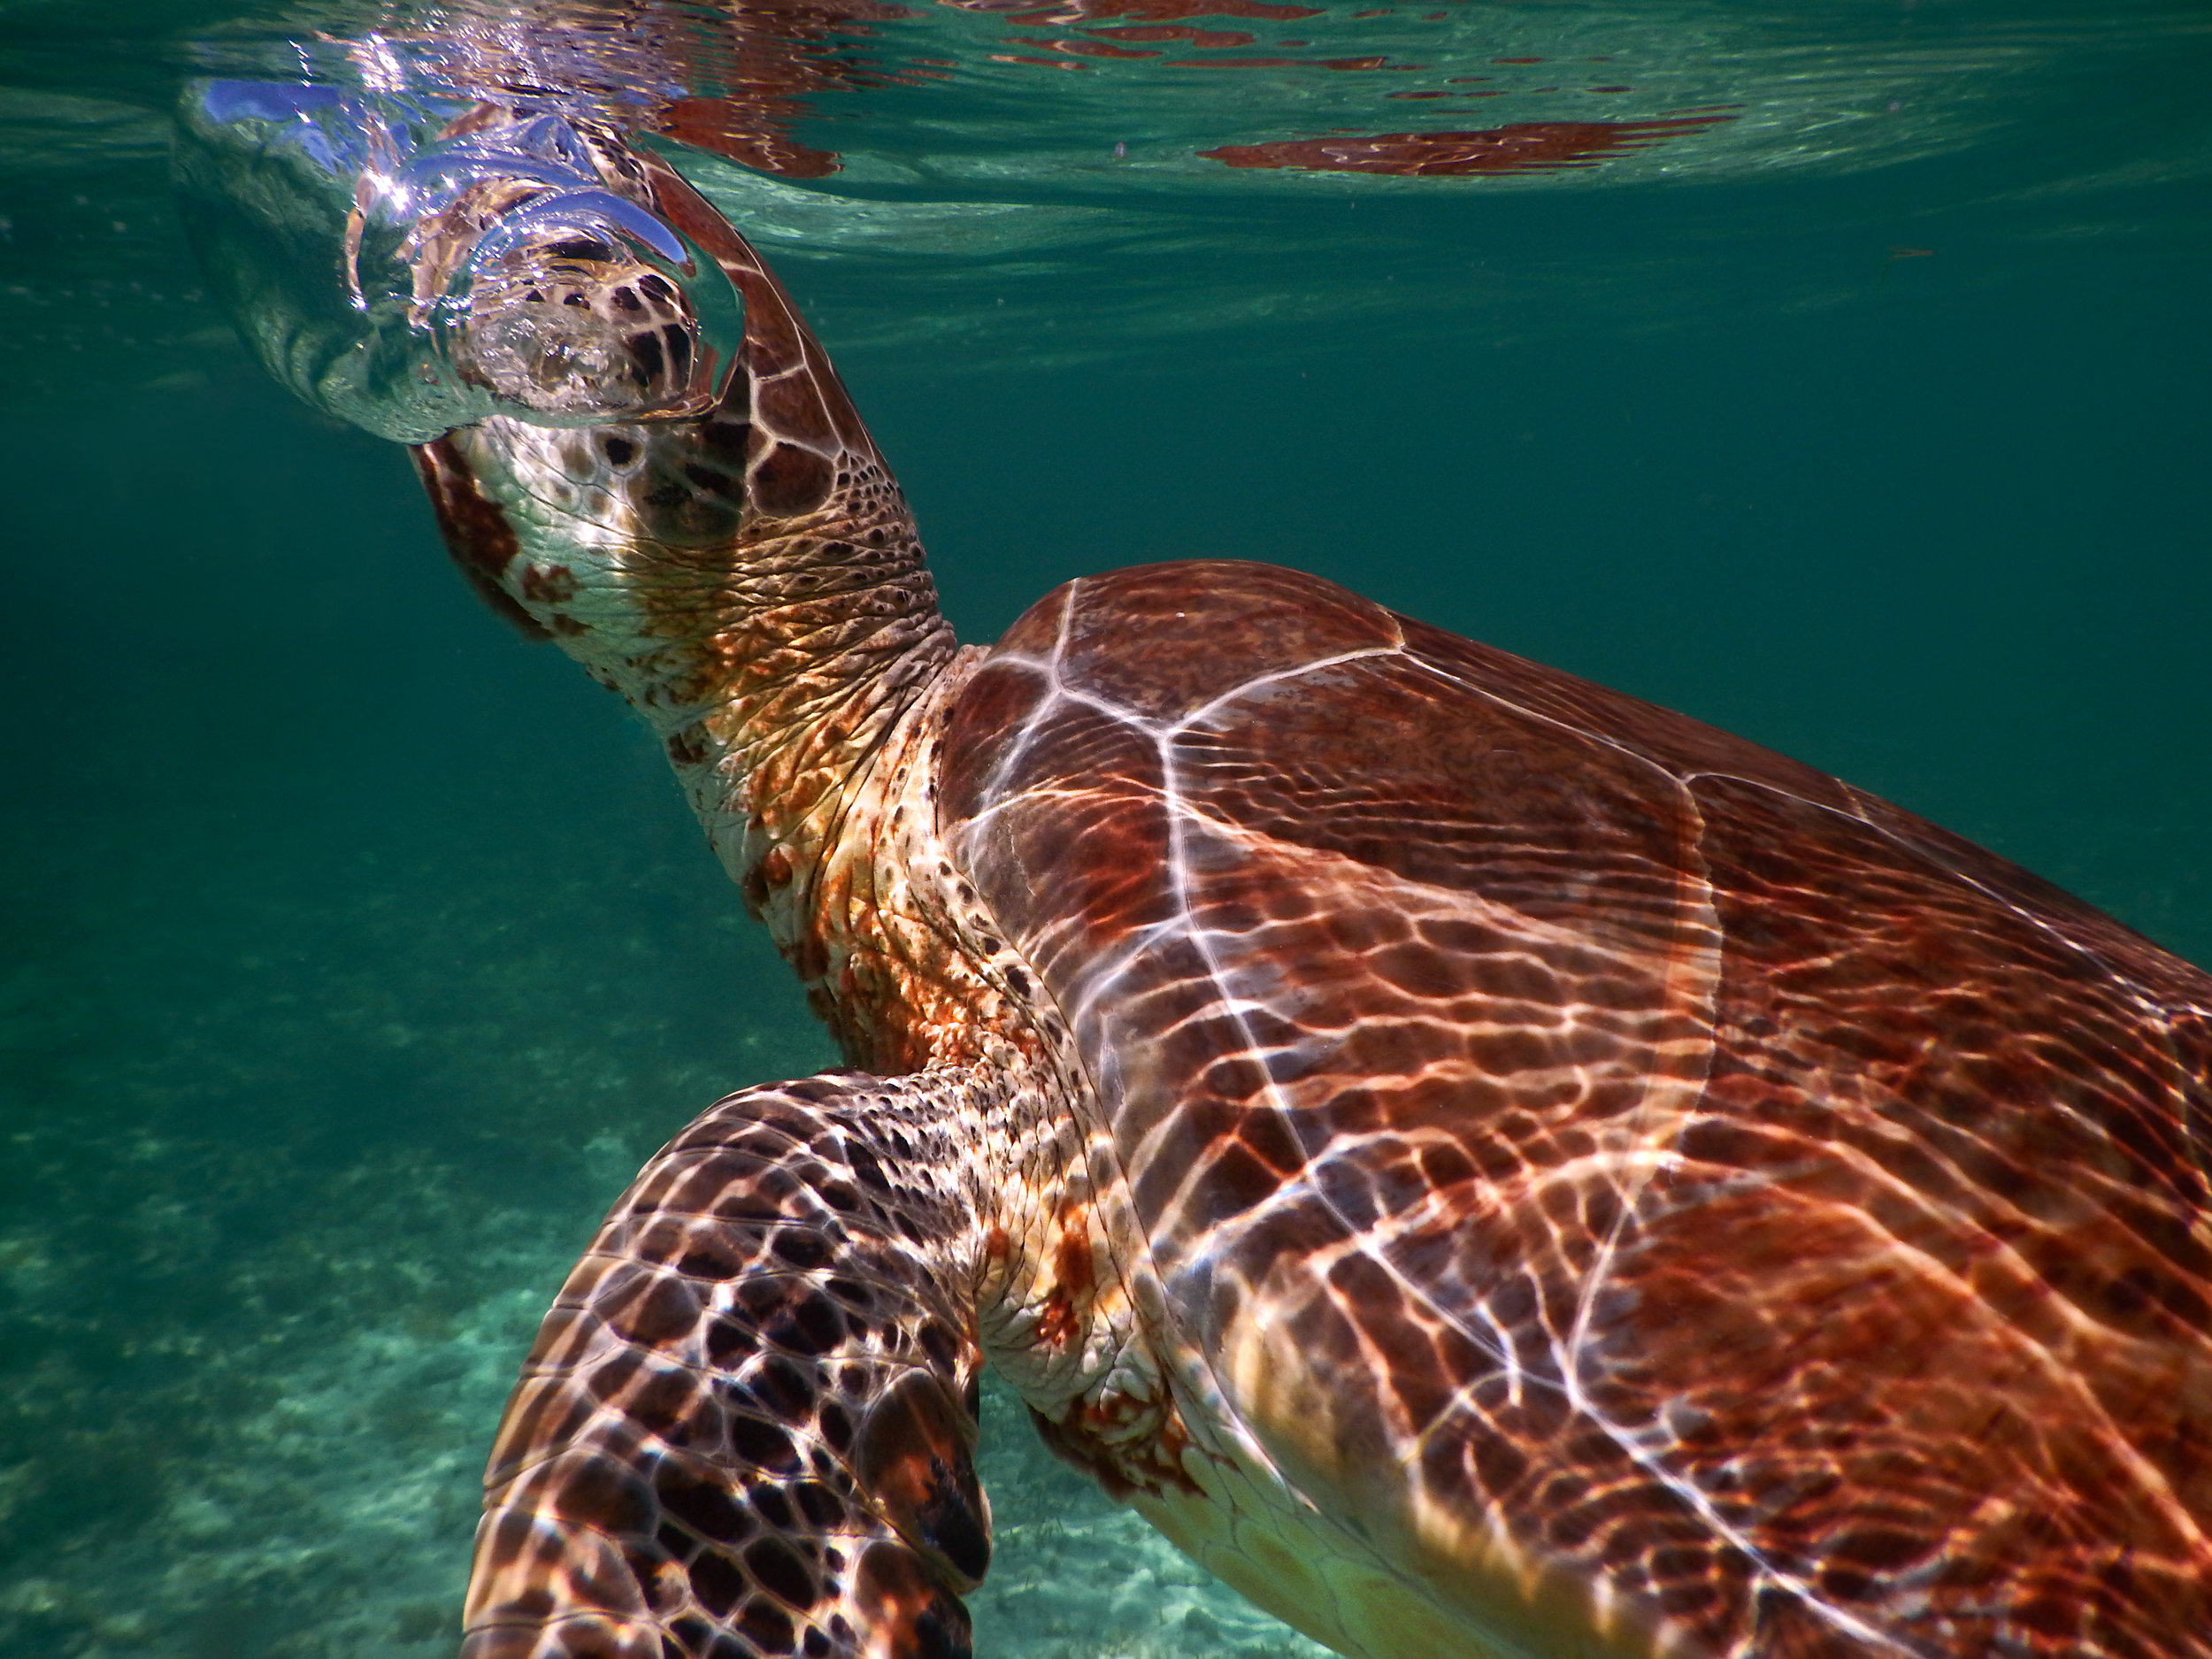 A green sea turtle ( Chelonia mydas ) takes a breath at the surface off the coast of Nasau.